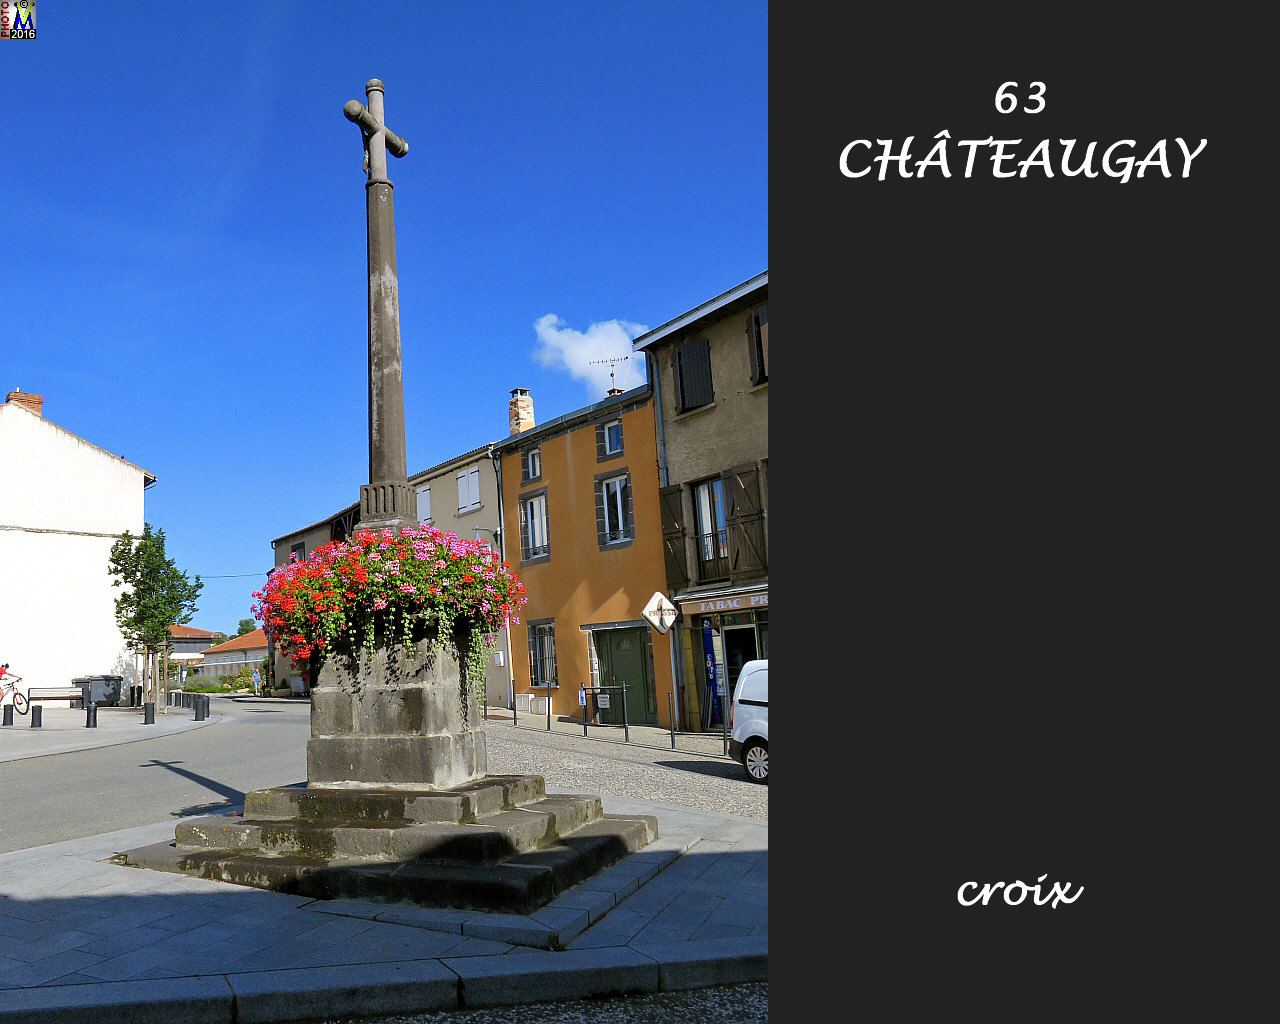 63CHATEAUGAY_croix_100.jpg